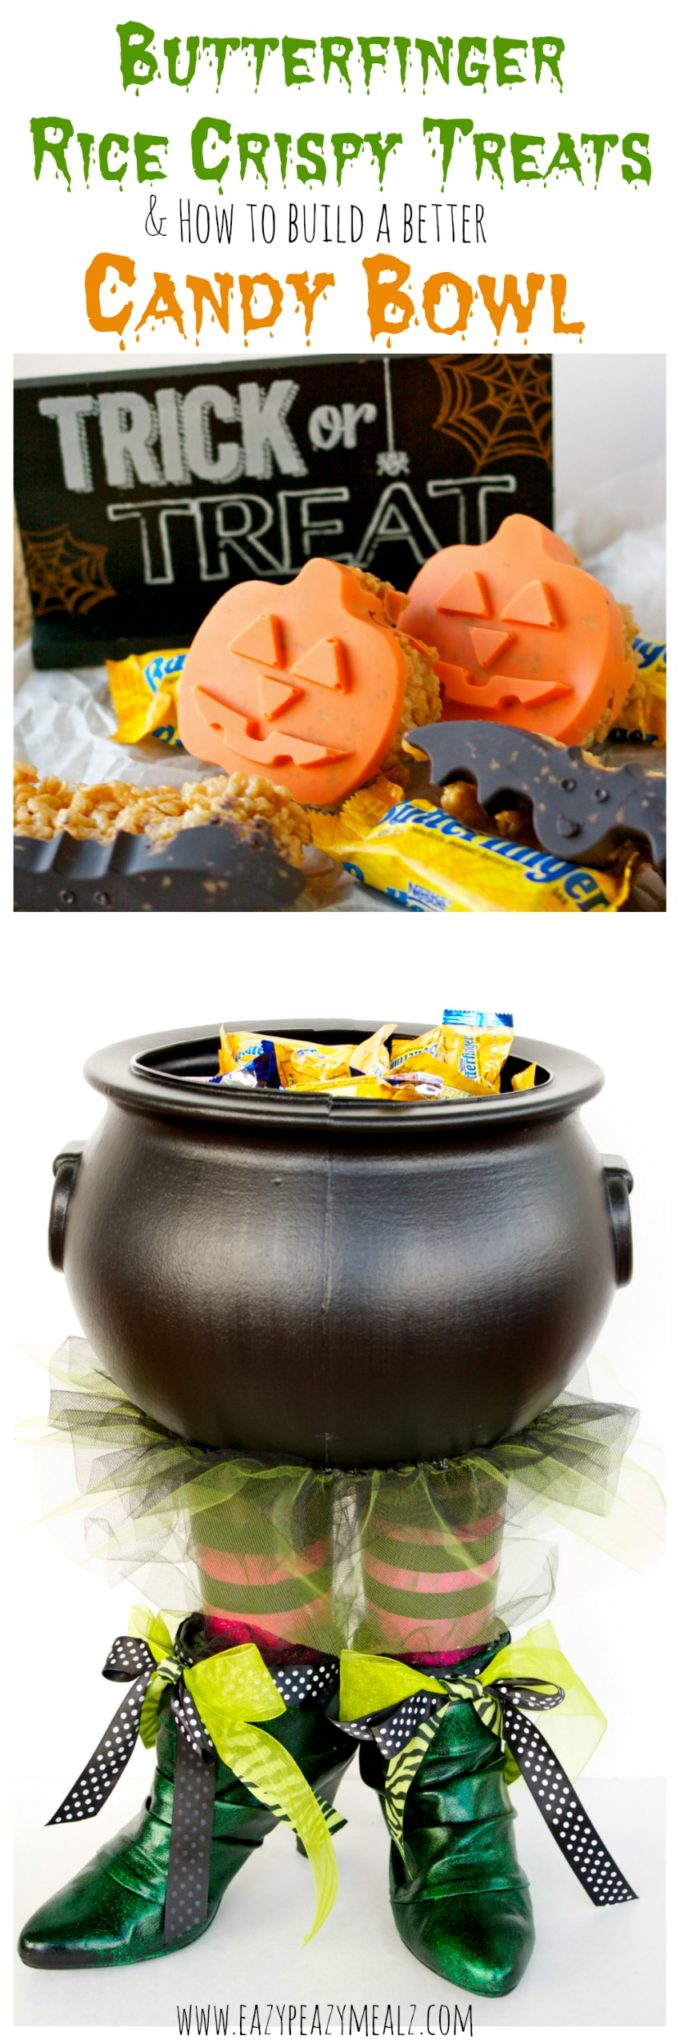 Butterfinger Halloween Rice Crispy Treats & How to Build A Better Candy Bowl